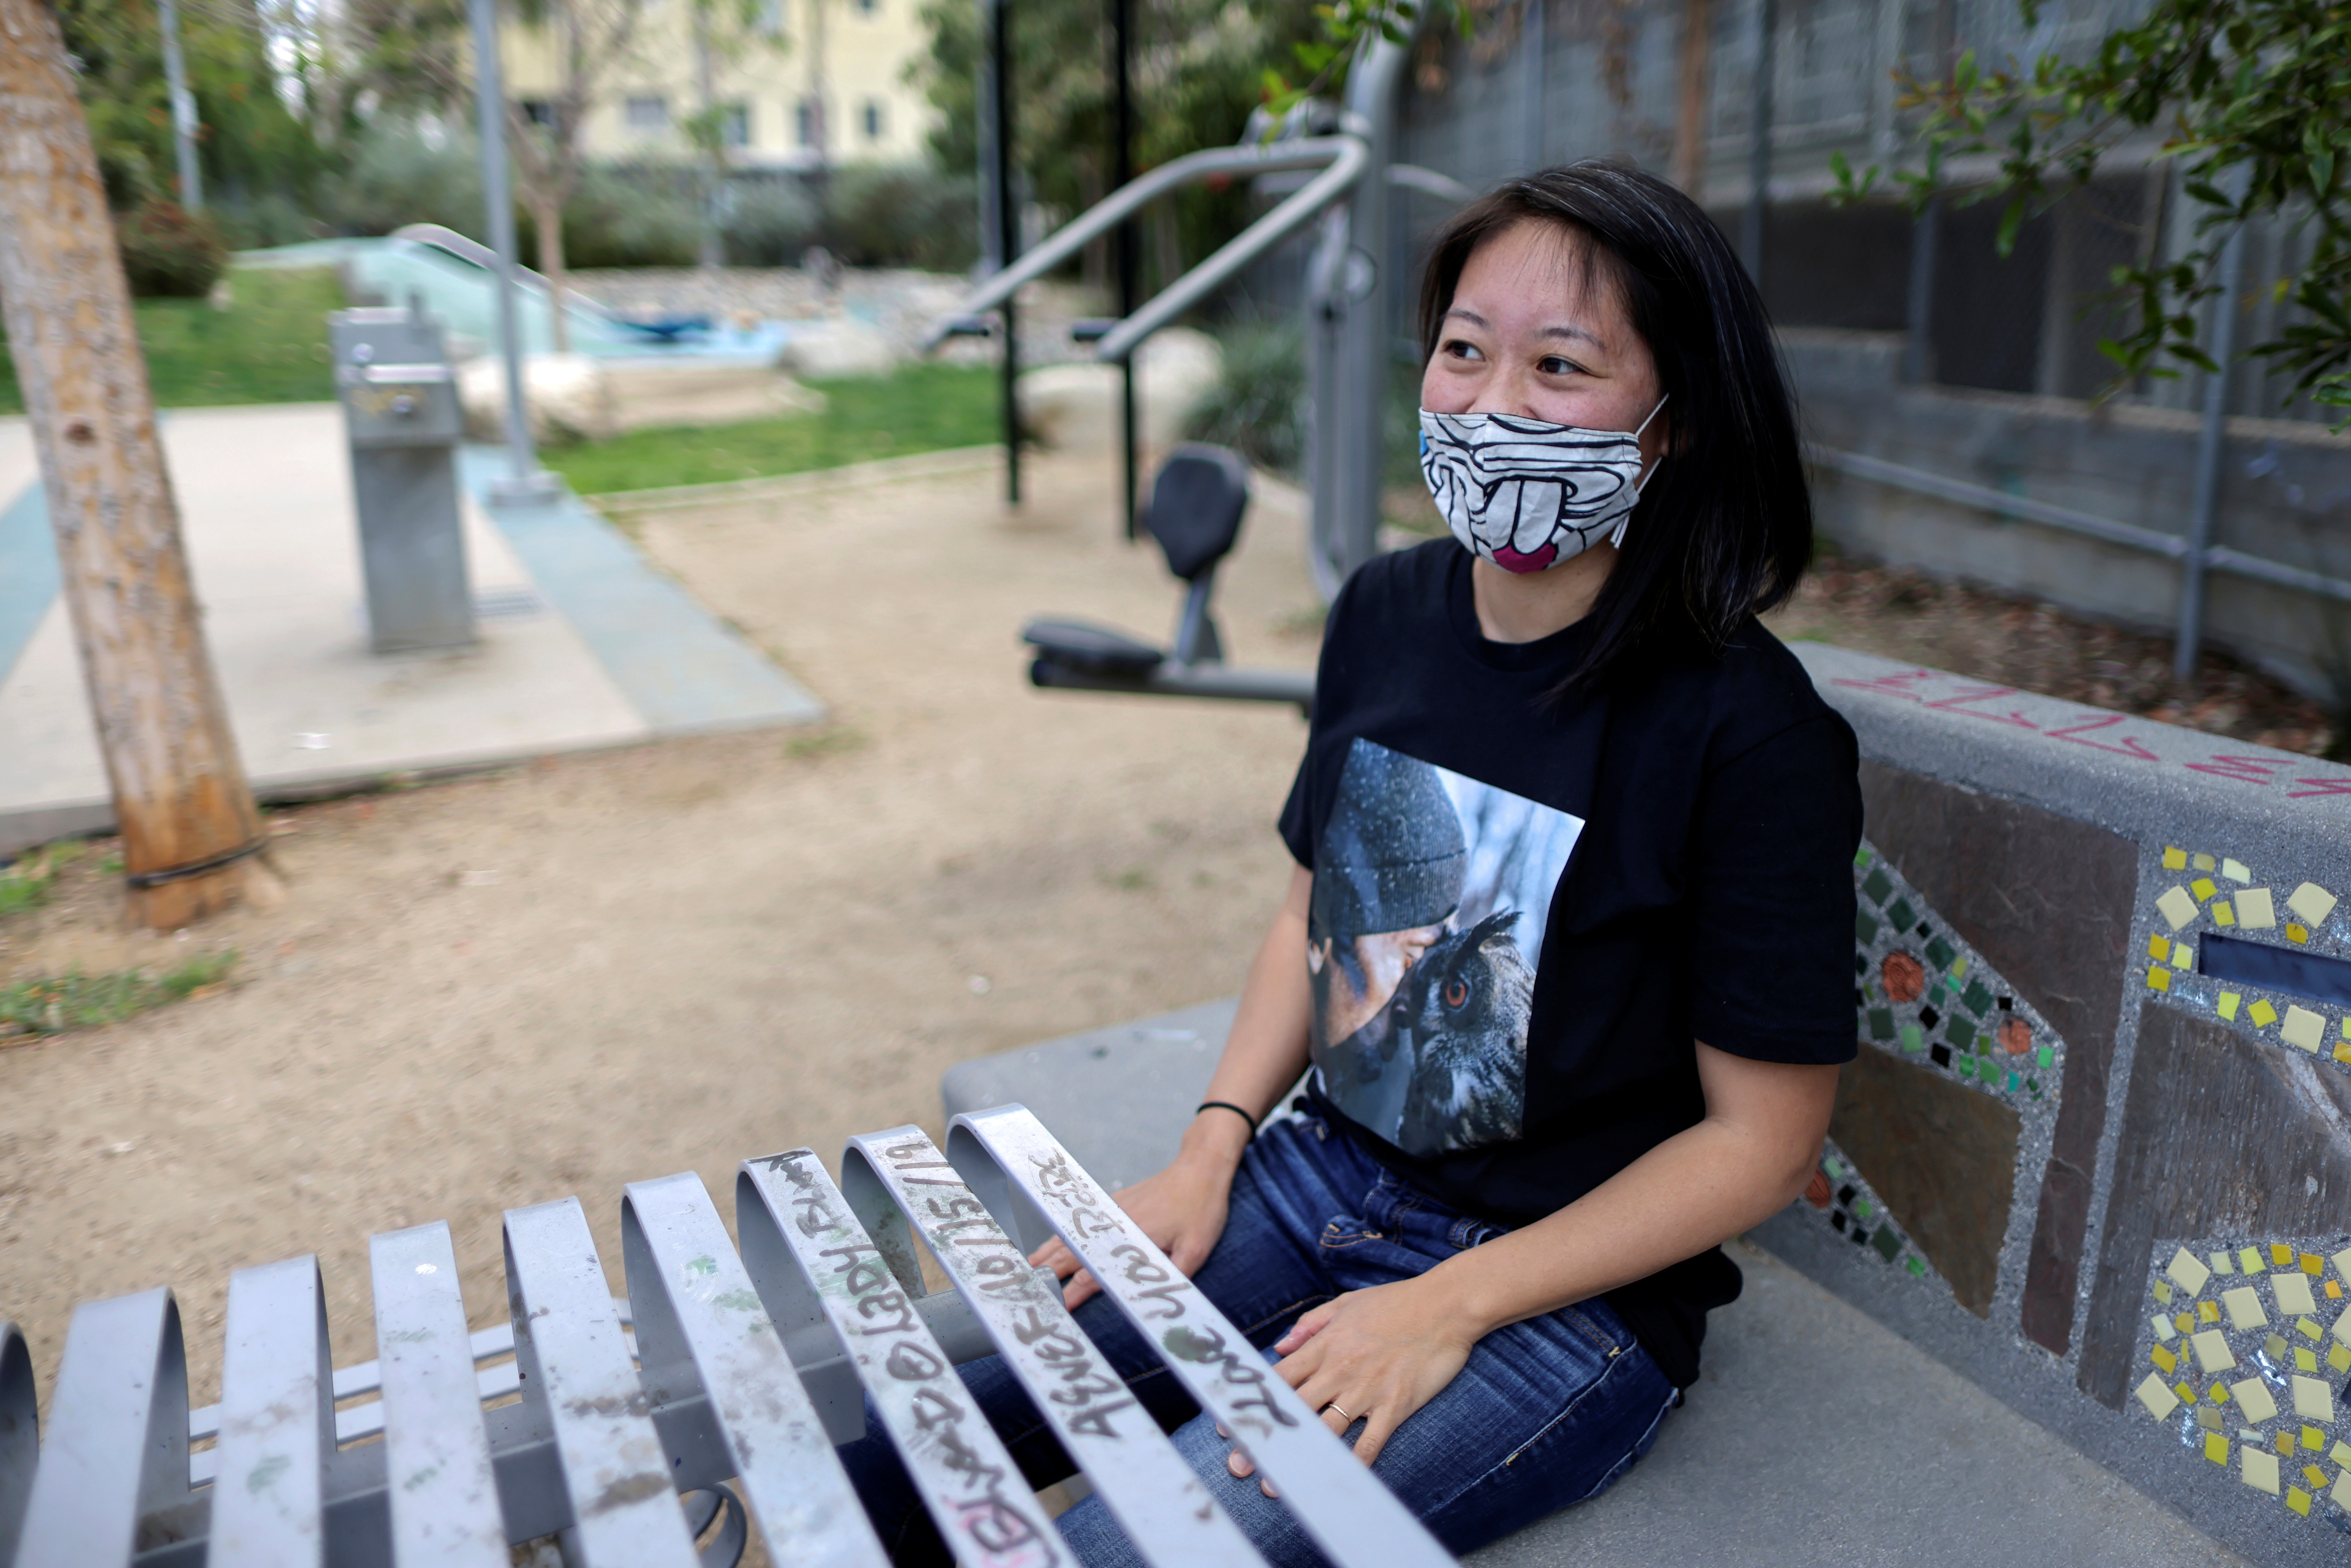 Tracy Park sits in the park in which she was shouted at, as the coronavirus disease (COVID-19) pandemic continues, in Hollywood, Los Angeles, California, U.S., April 27, 2021. REUTERS/Lucy Nicholson